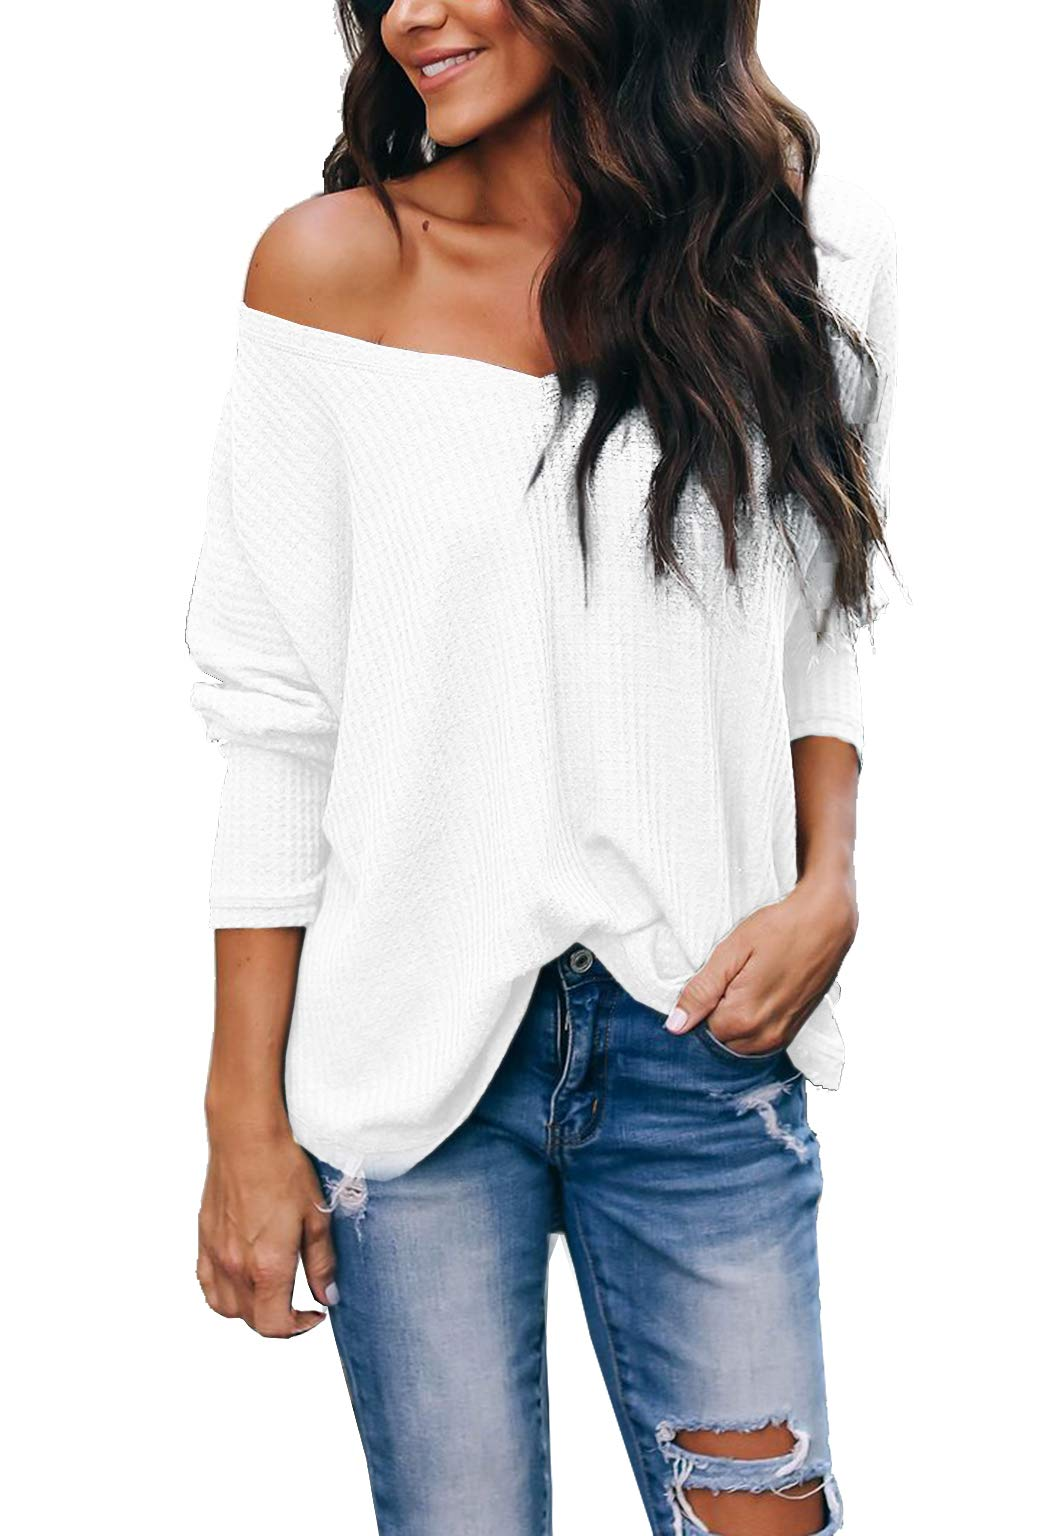 Albe Rita Women's Casual V-Neck Off Shoulder Batwing Sleeve Pullover Tops,White,S by Albe Rita